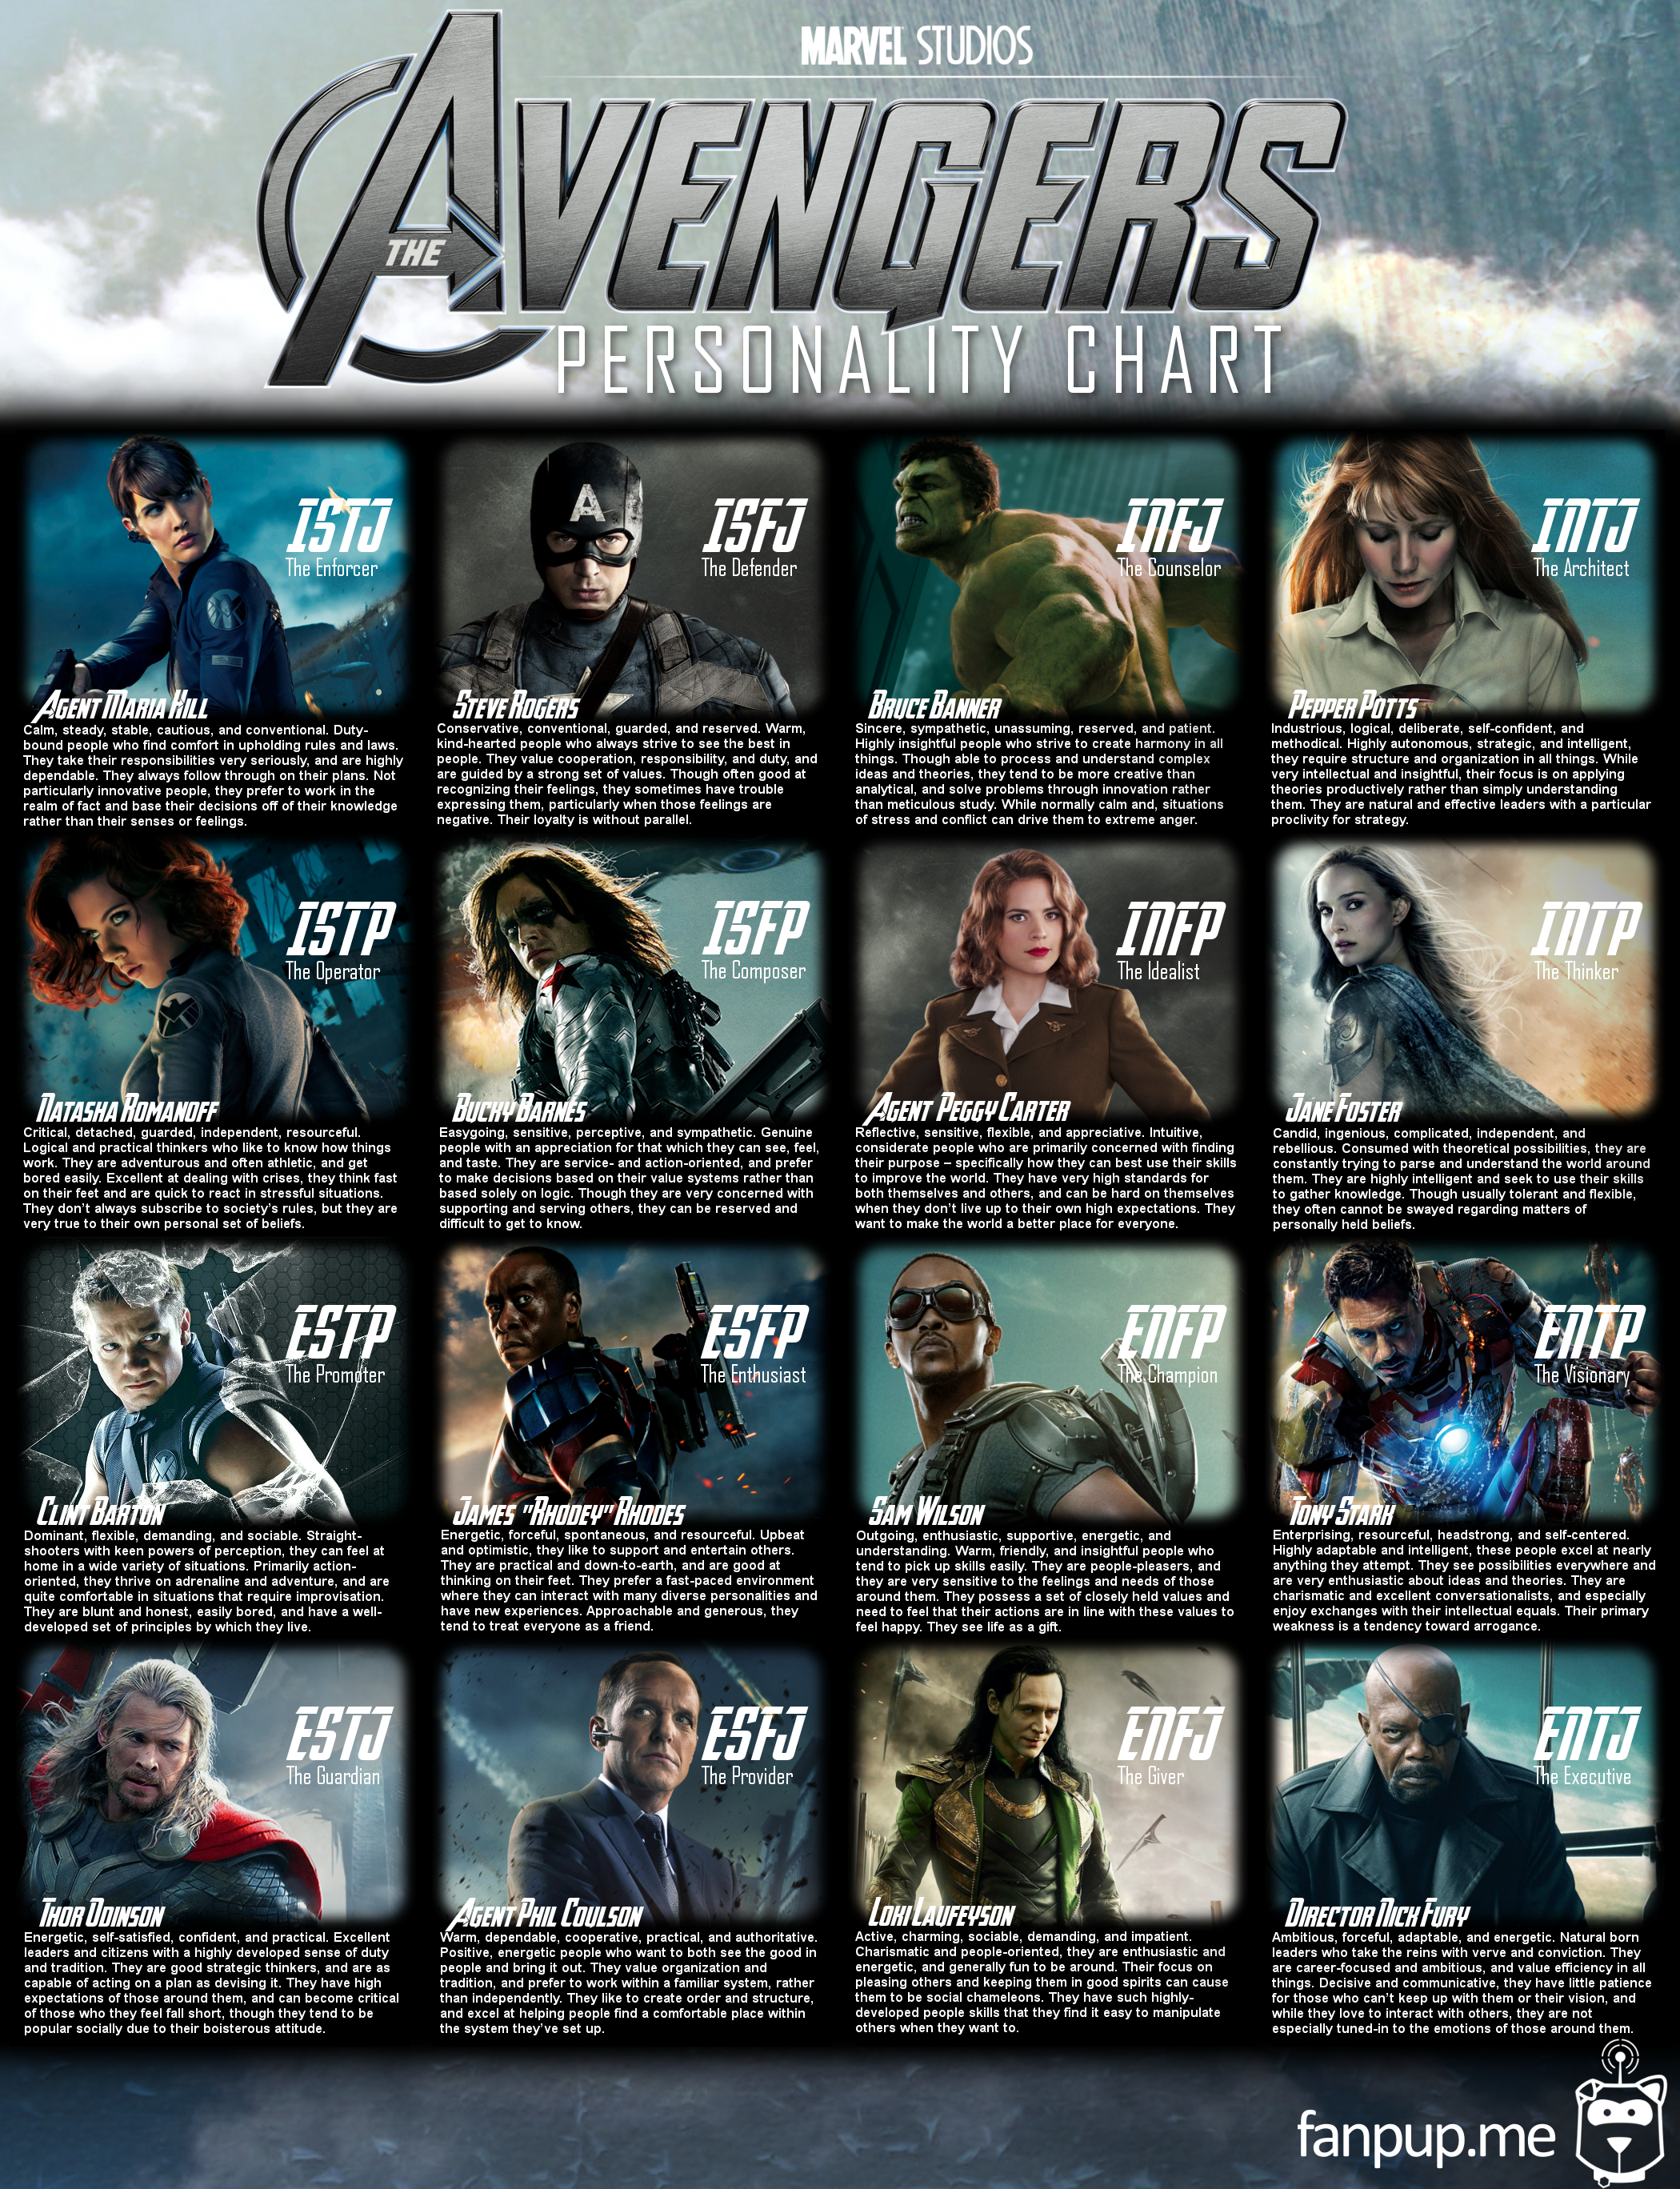 The Avengers MBTI Personality Chart! I'M PEGGY CARTER! I'M PEGGY CARTER!!!!!!!!!!!!(sorry, I got a little excited)